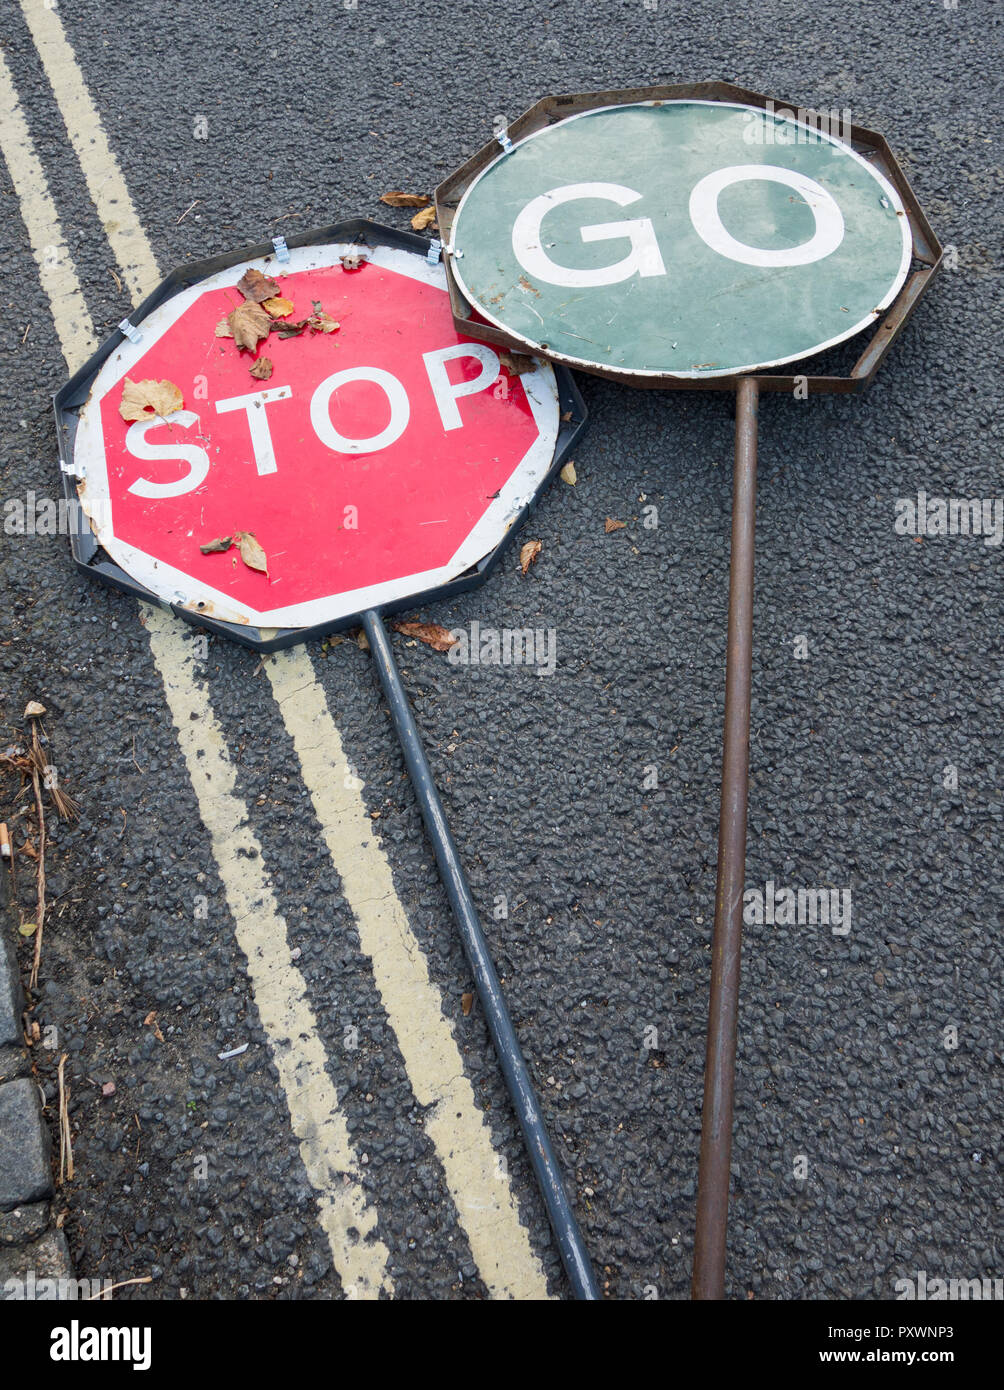 Stop Go traffic indicator signs discarded on a road in the UK - Stock Image